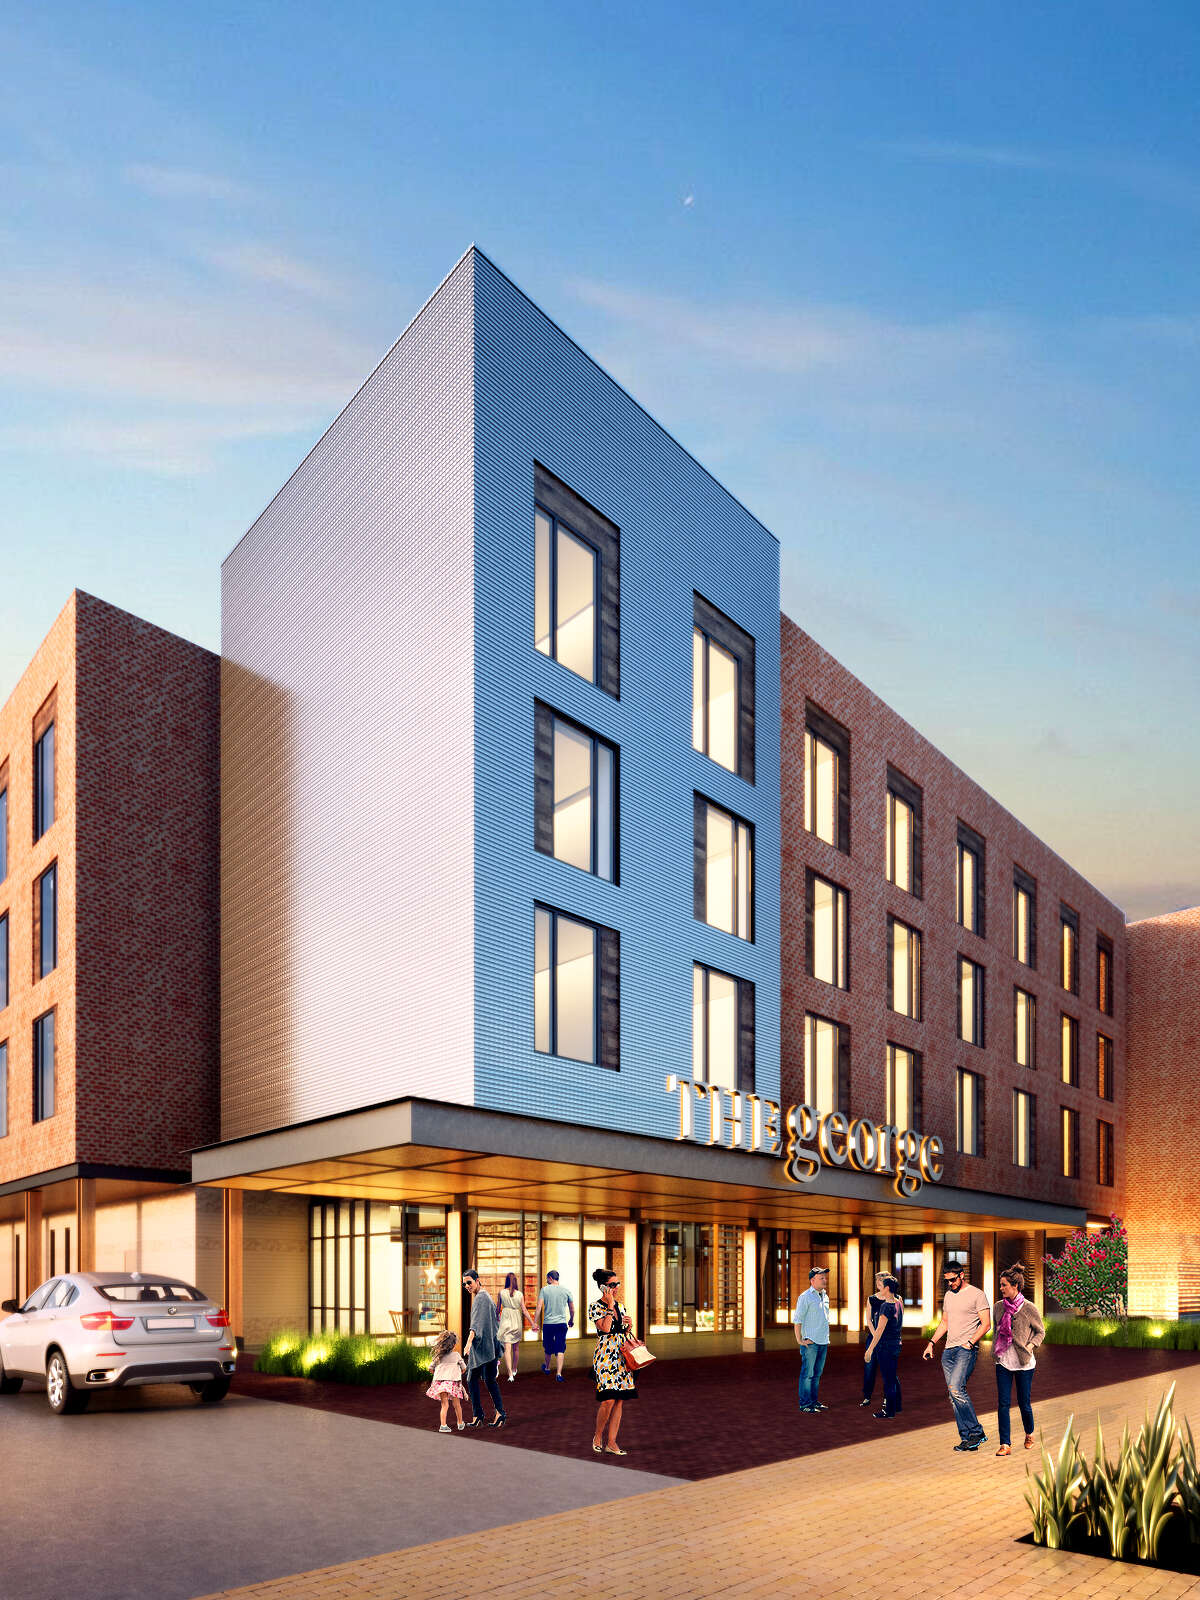 The George Hotel will open in August in Century Square at Texas A&M University.